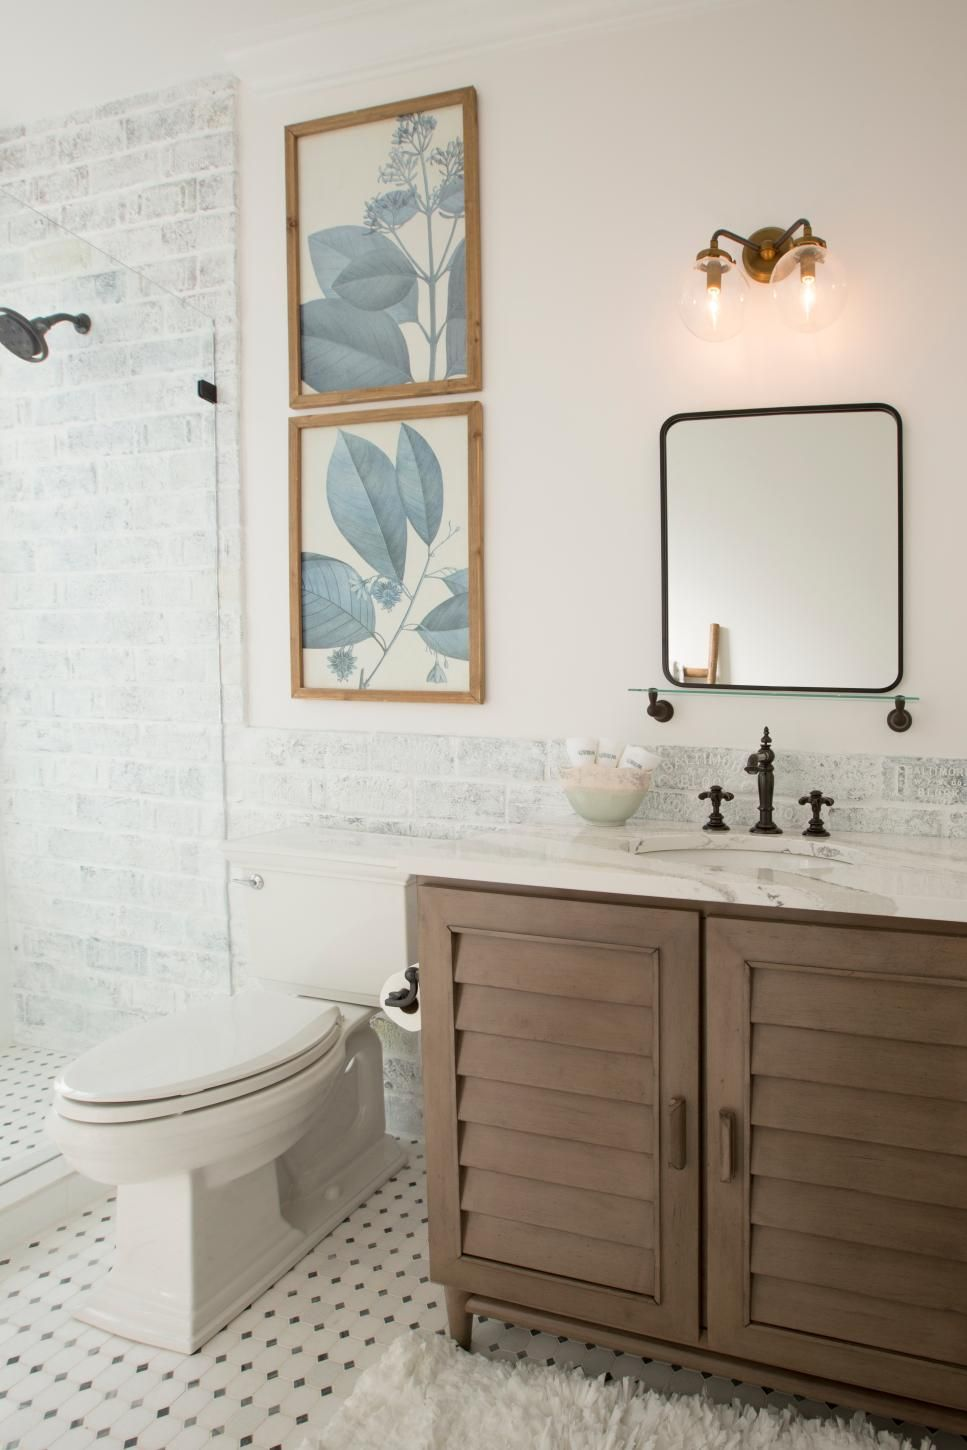 Dale And Amy Earnhardt S Historic Home Renovation In Key West